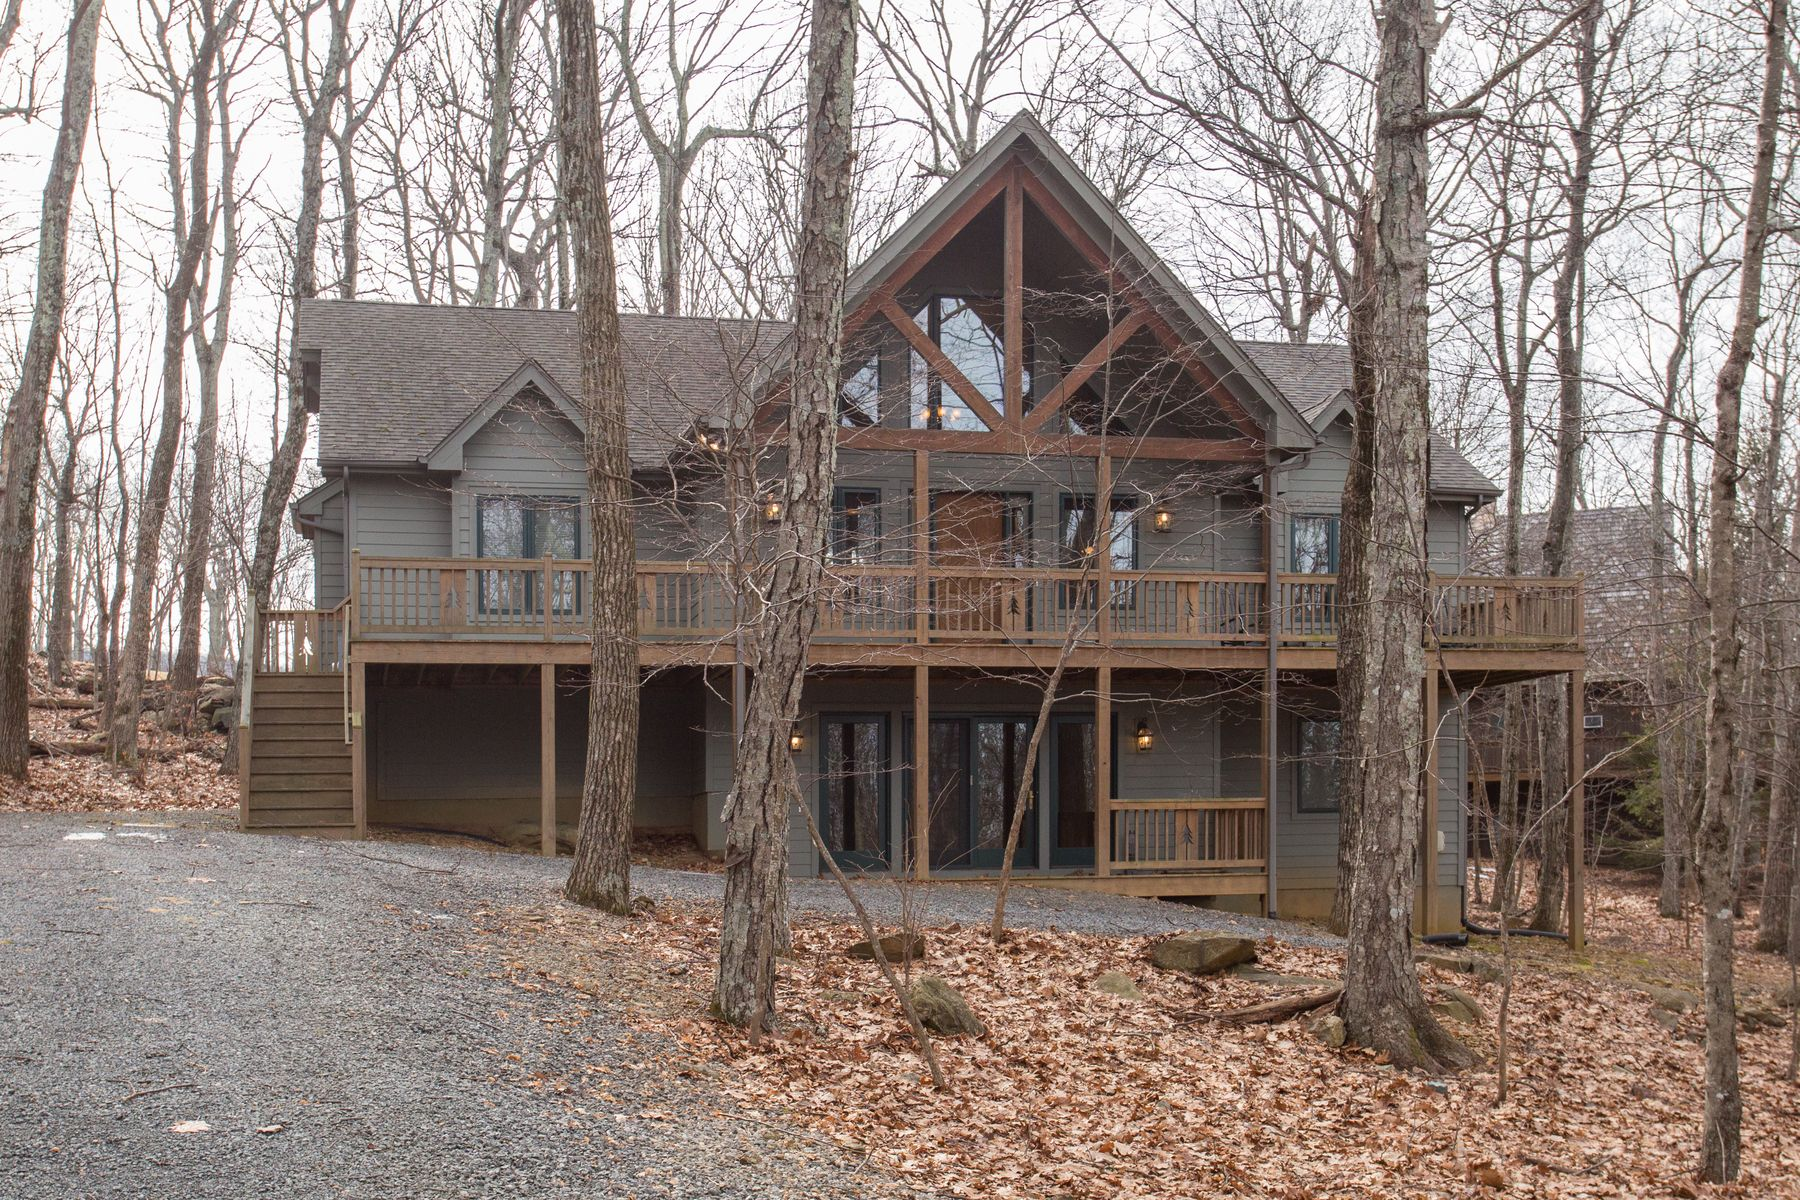 Additional photo for property listing at Mountain Getaway 224 Deer Springs Lane Nellysford, Virginia 22958 United States